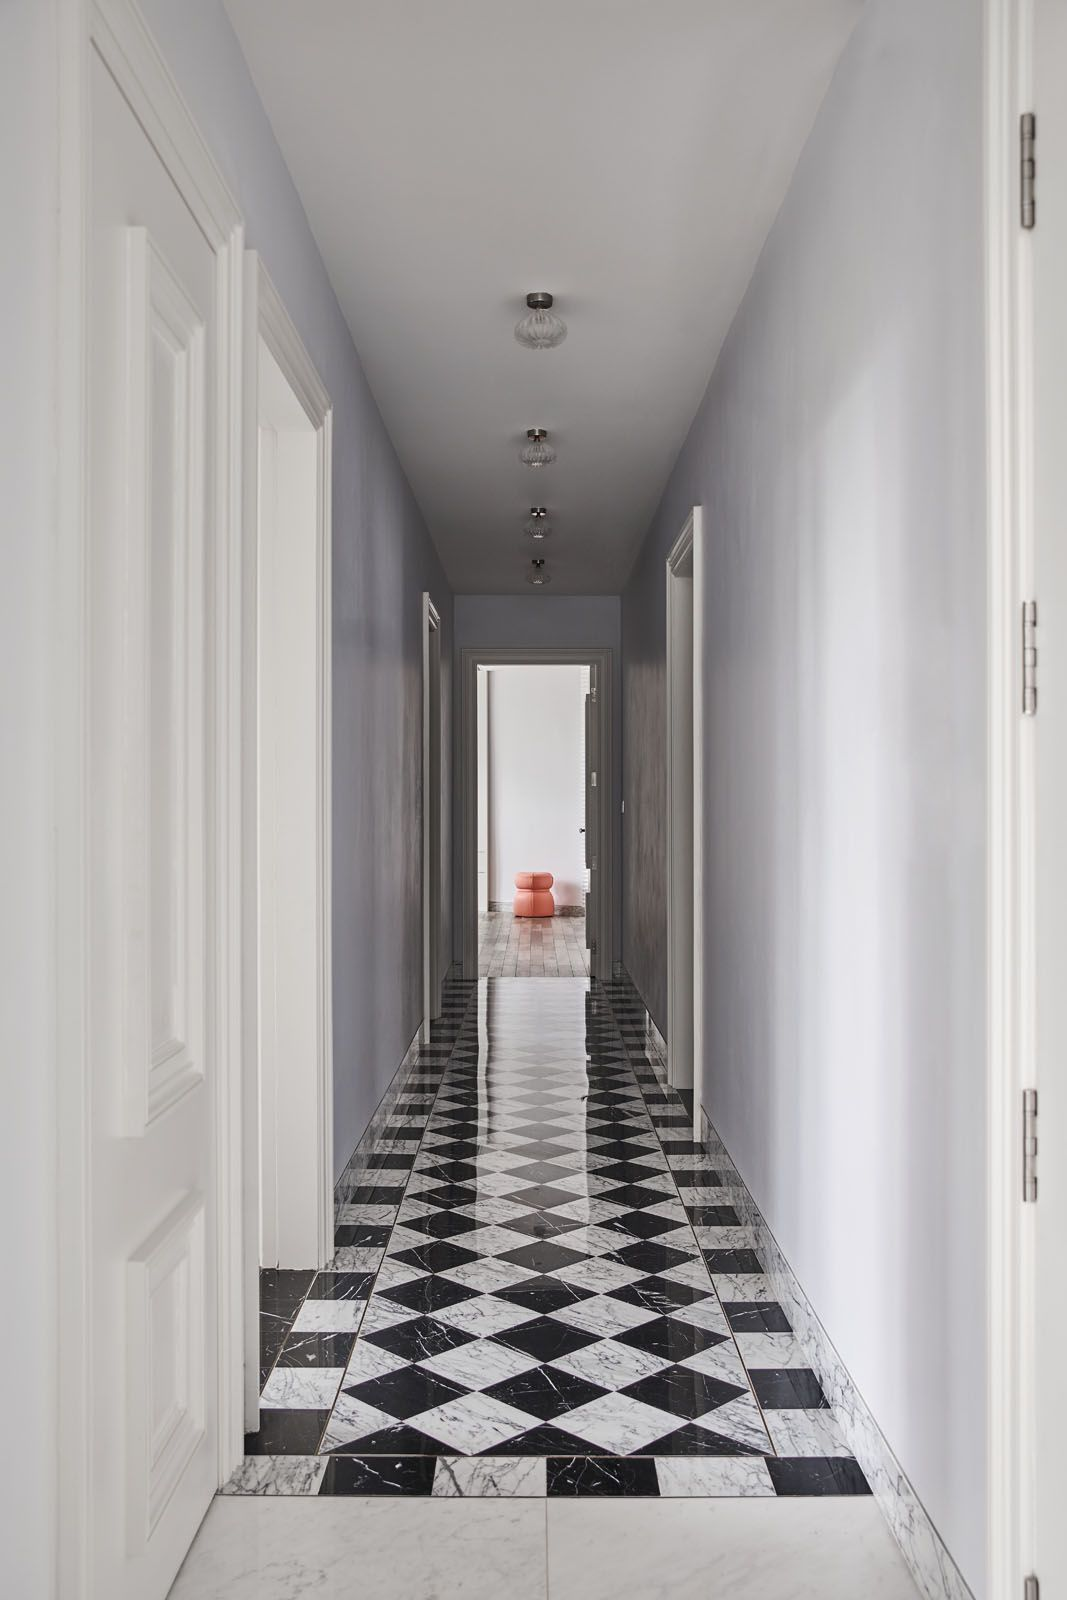 The corridor features a striking checkerboard pattern